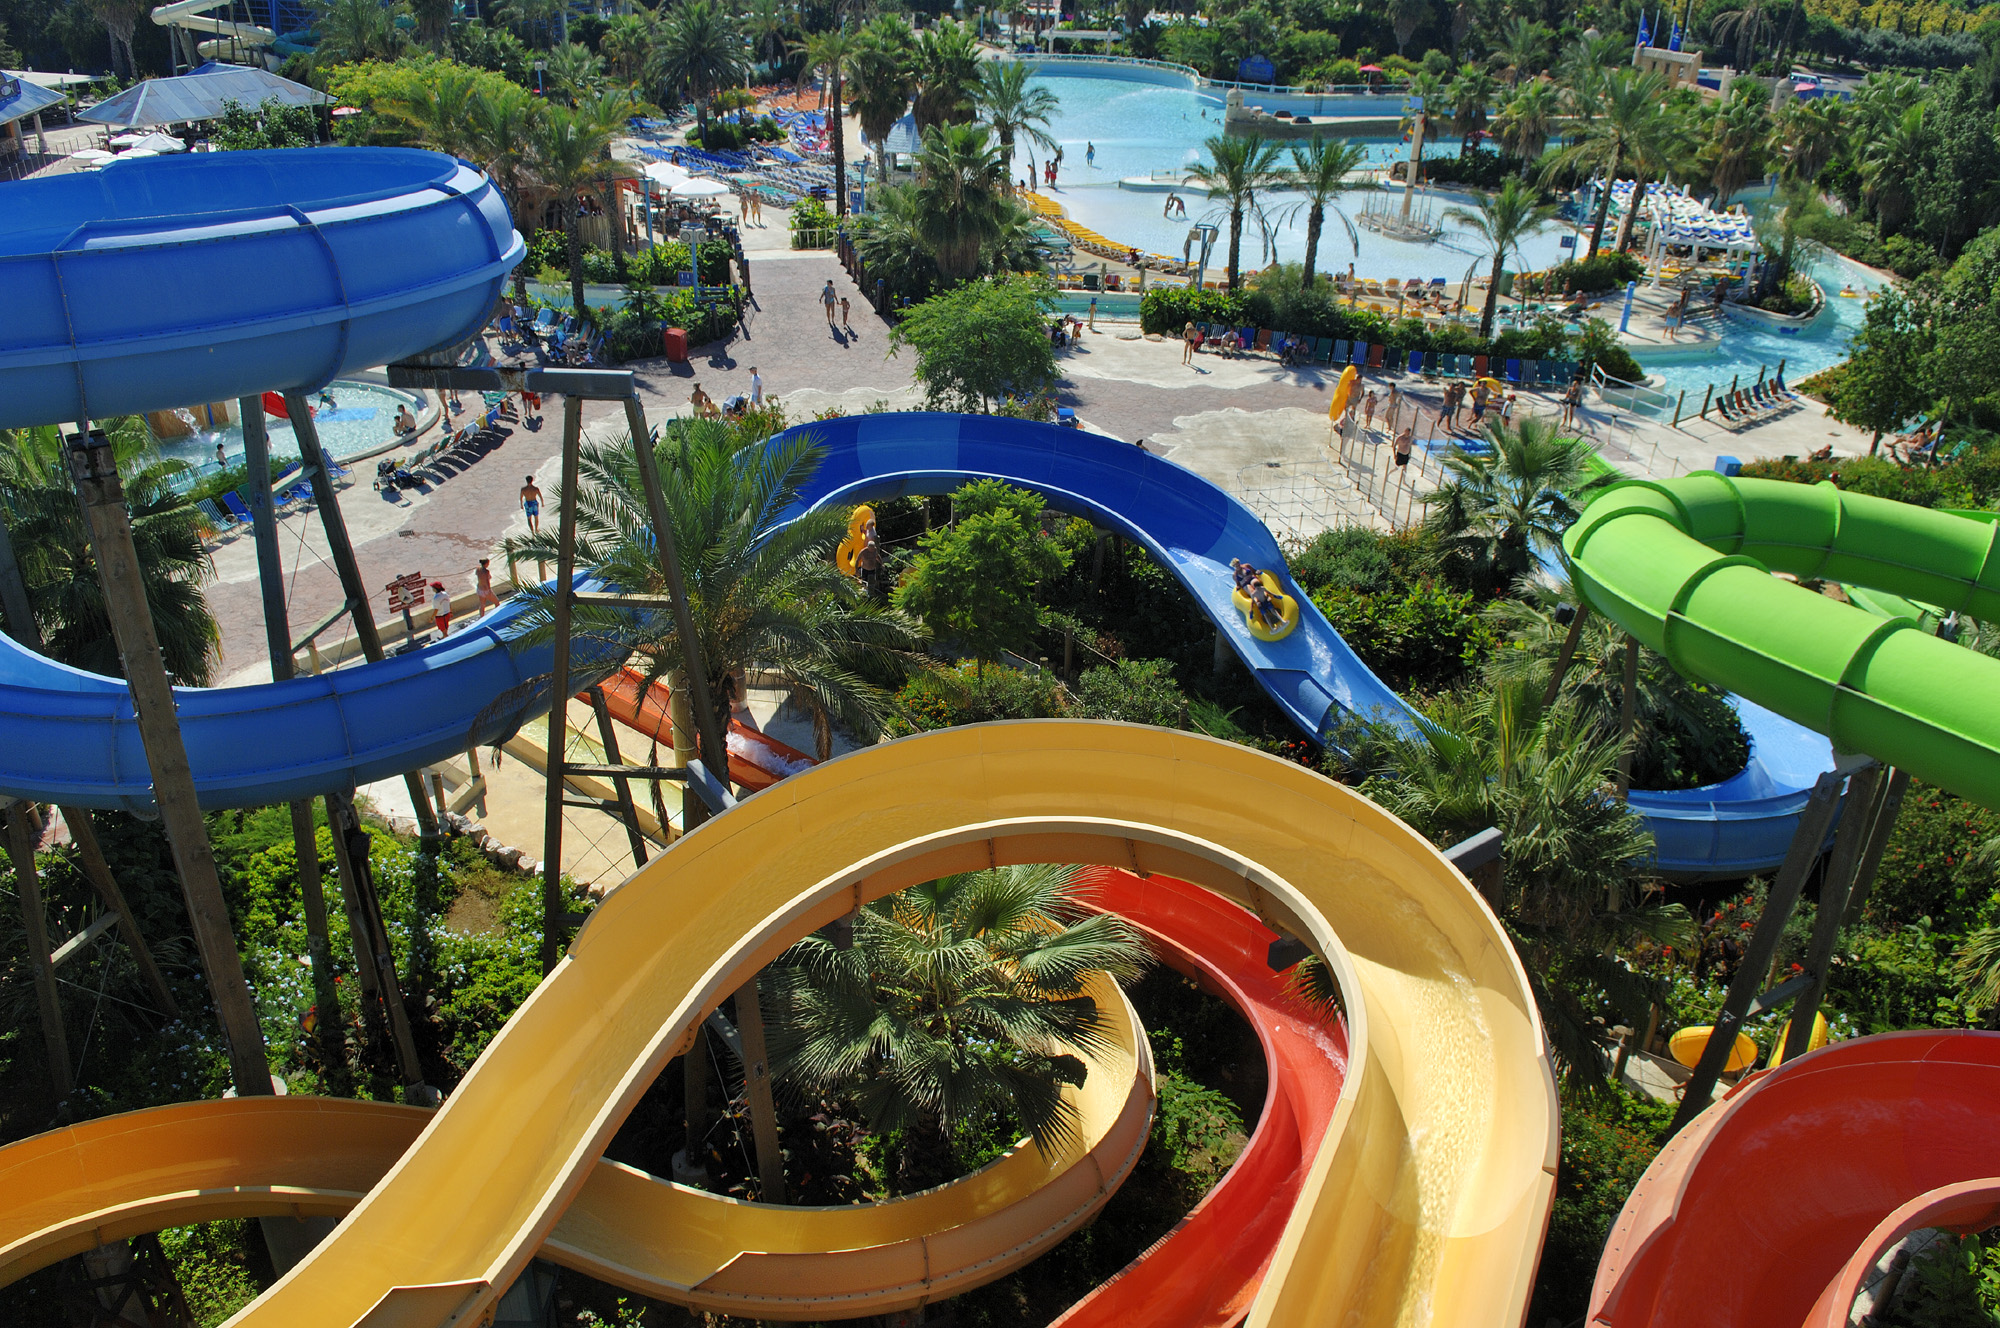 Caribe Aquatic Park; water parks in Spain